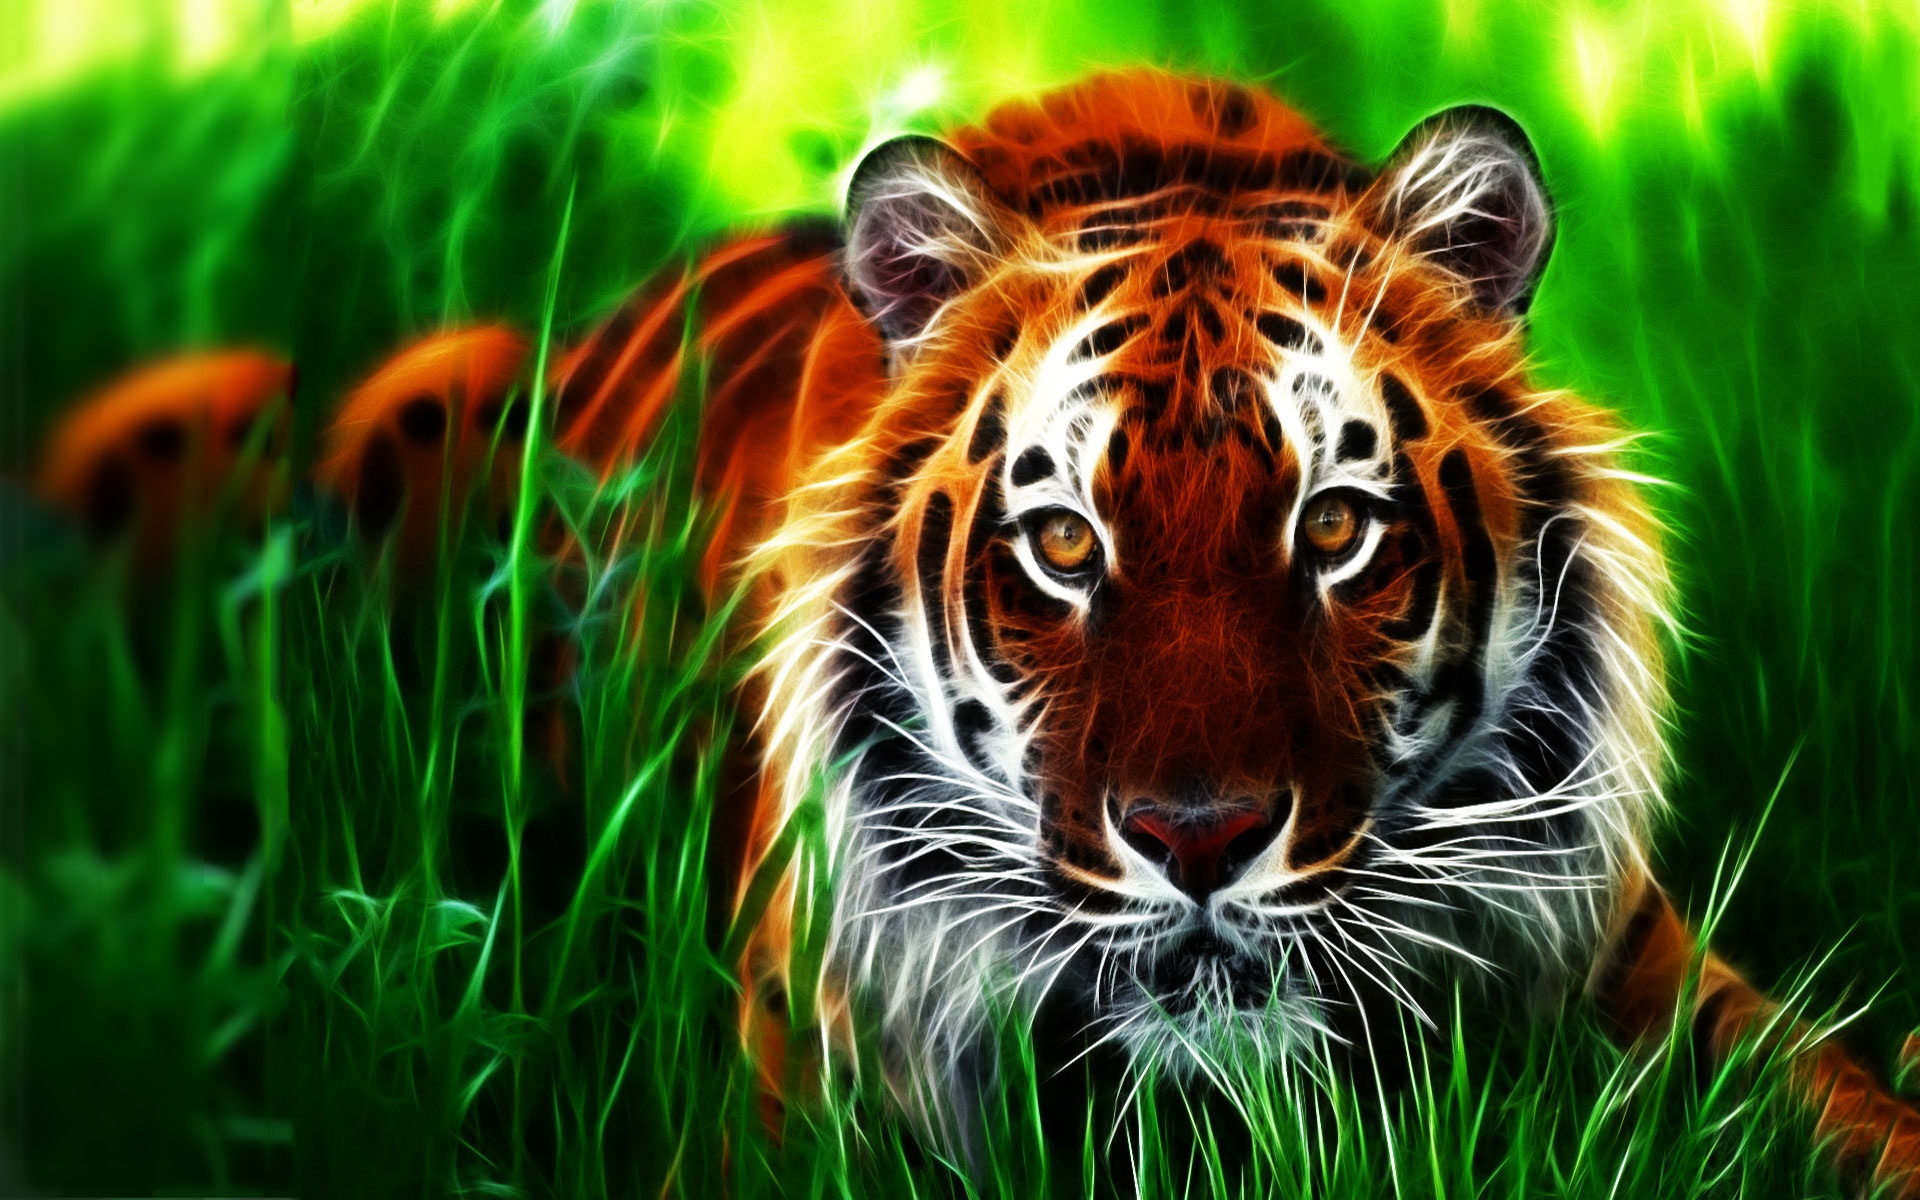 Lilly Pulitzer Fall Wallpaper Download Tiger 3d Wallpapers Free Download Gallery